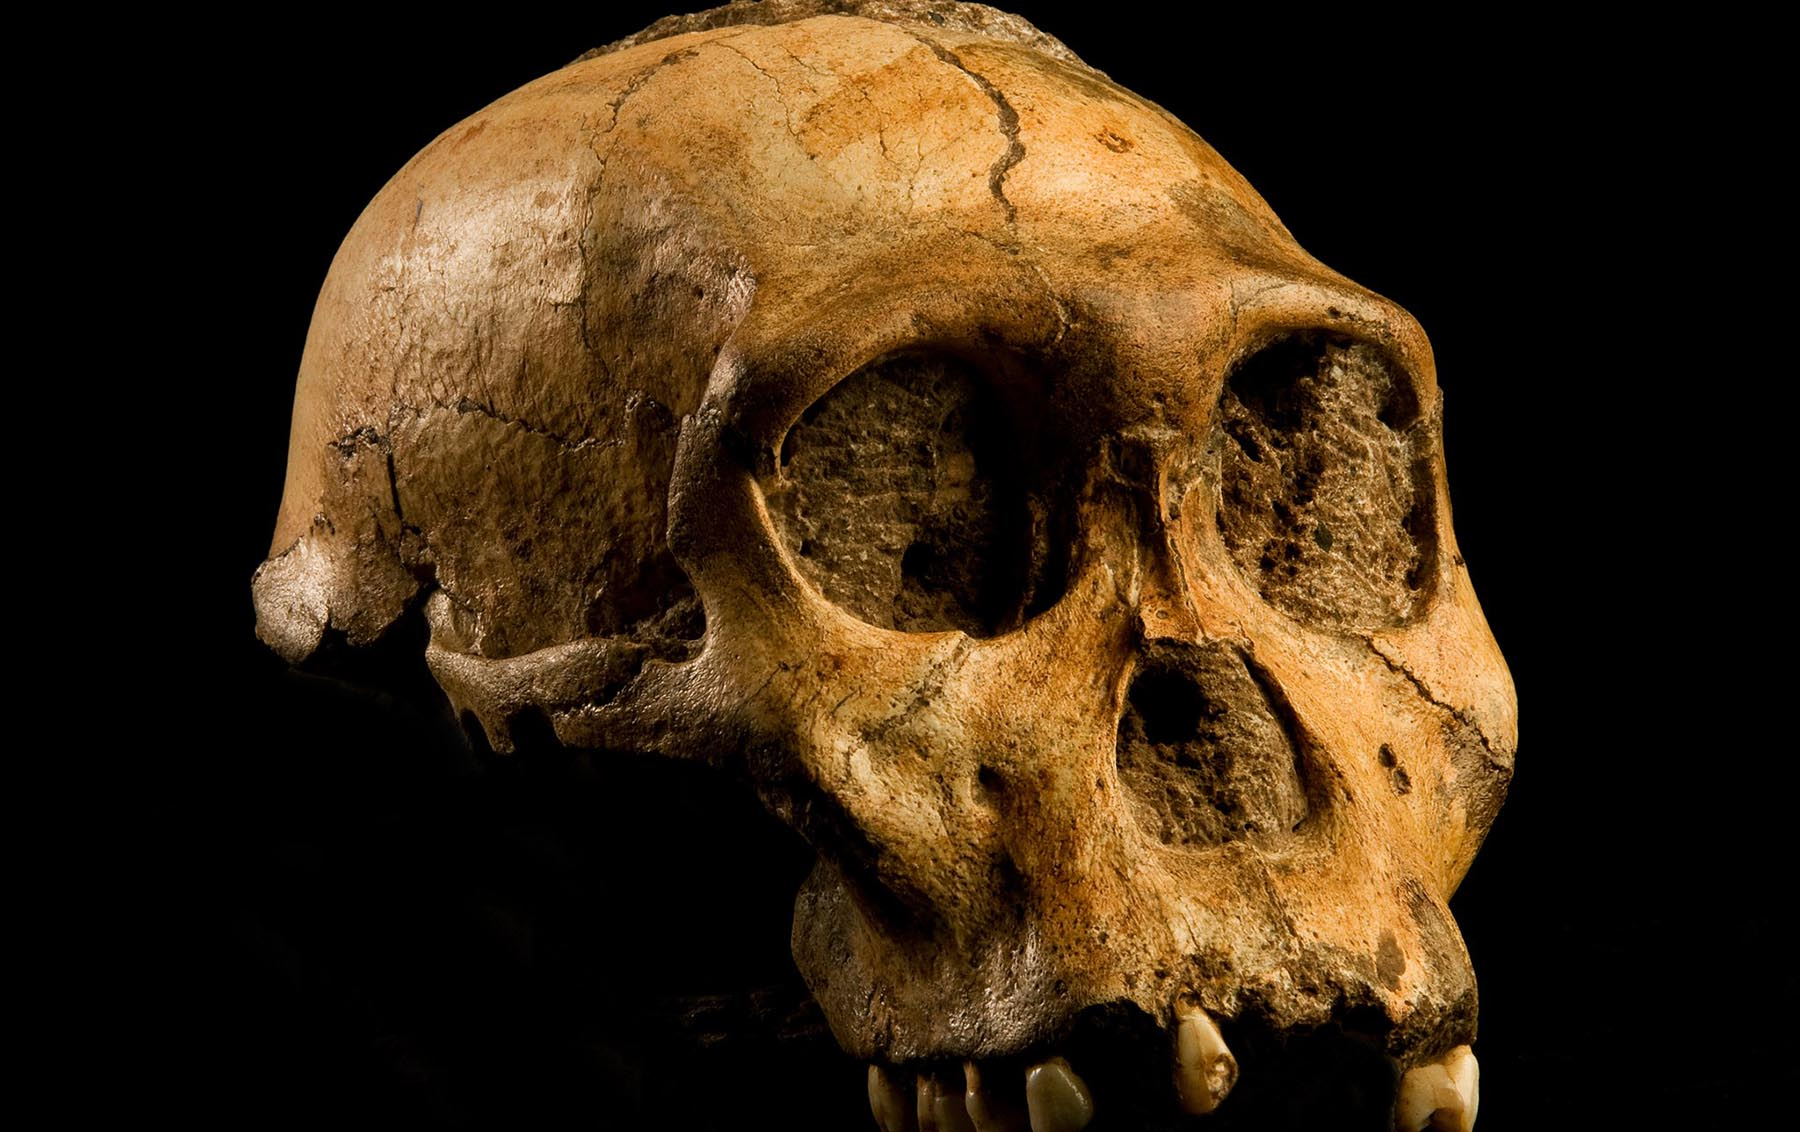 The skull of a Australopithecus sediba, a species of Australopithecines, who were our ancestors and whose brains started to grow two to three million years ago. Image credit - Australopithecus sediba by Brett Eloff, courtesy Profberger and Wits University is licensed under CC BY-SA 4.0